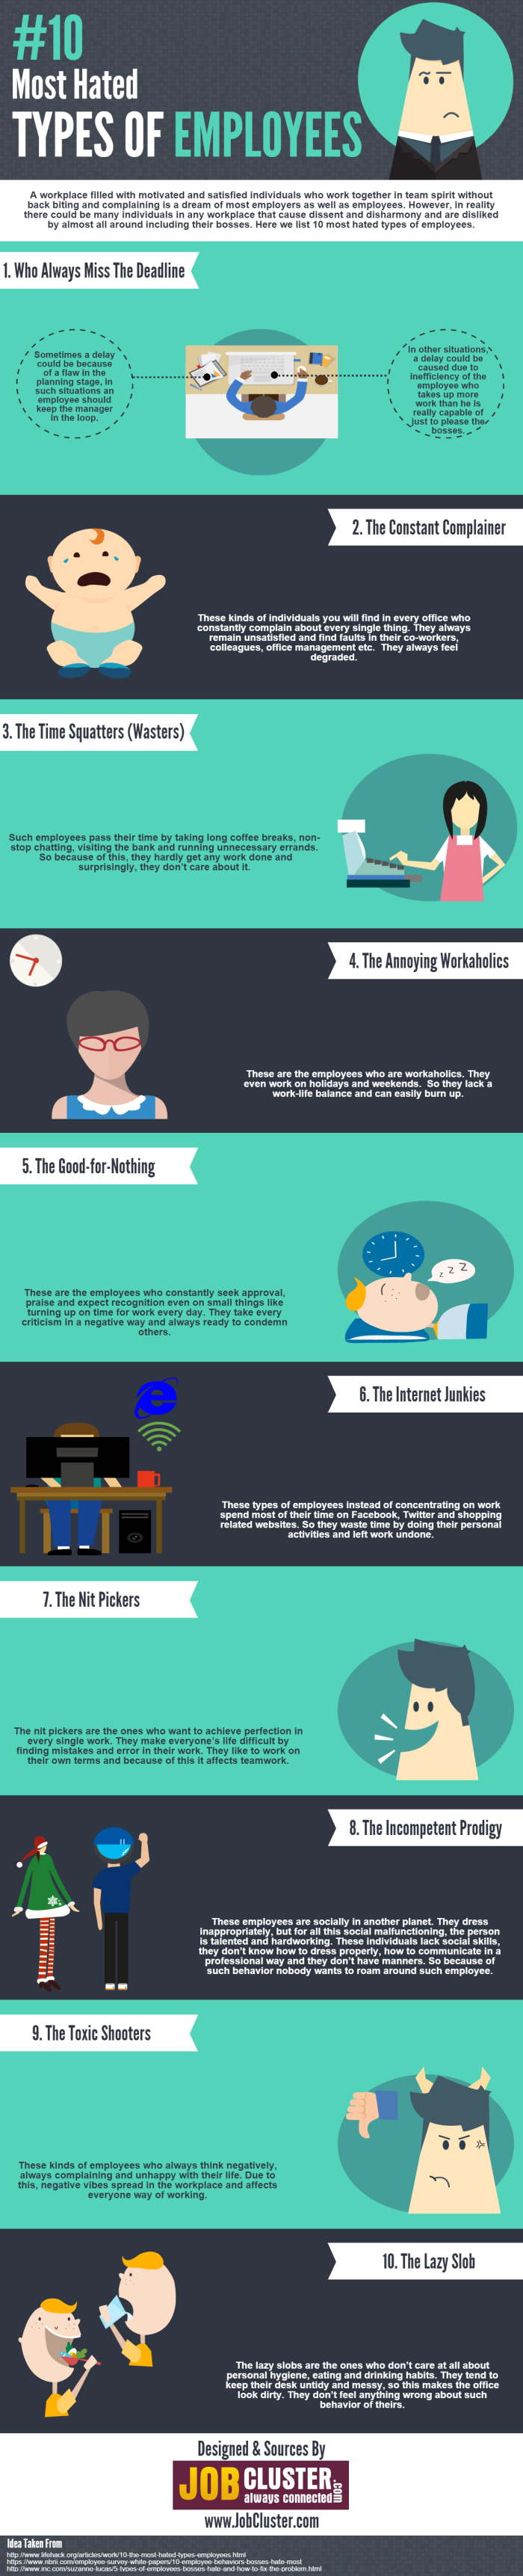 10-most-hated-types-of-employee